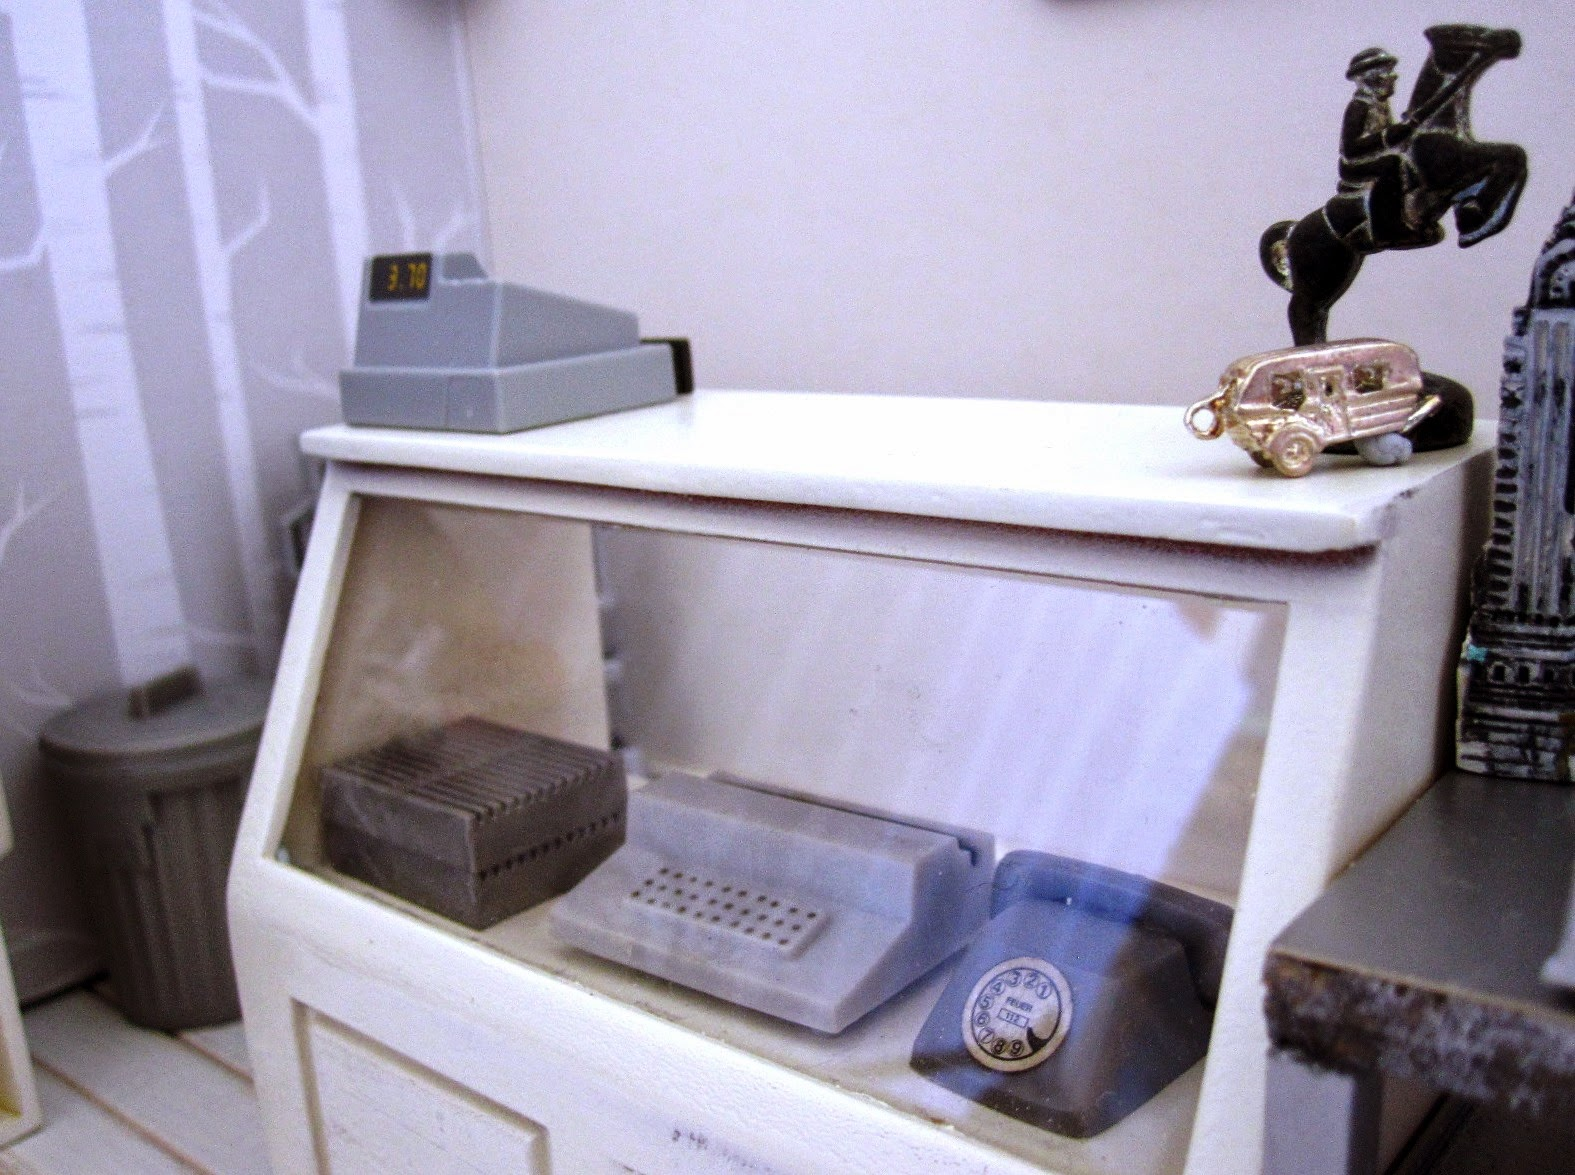 Counter of a modern dolls' house miniature homeware shop in grey and white. On the counter is a cash register and two silver statues. On display under the counter is a vintage grey typewriter and a vintage grey telephone.